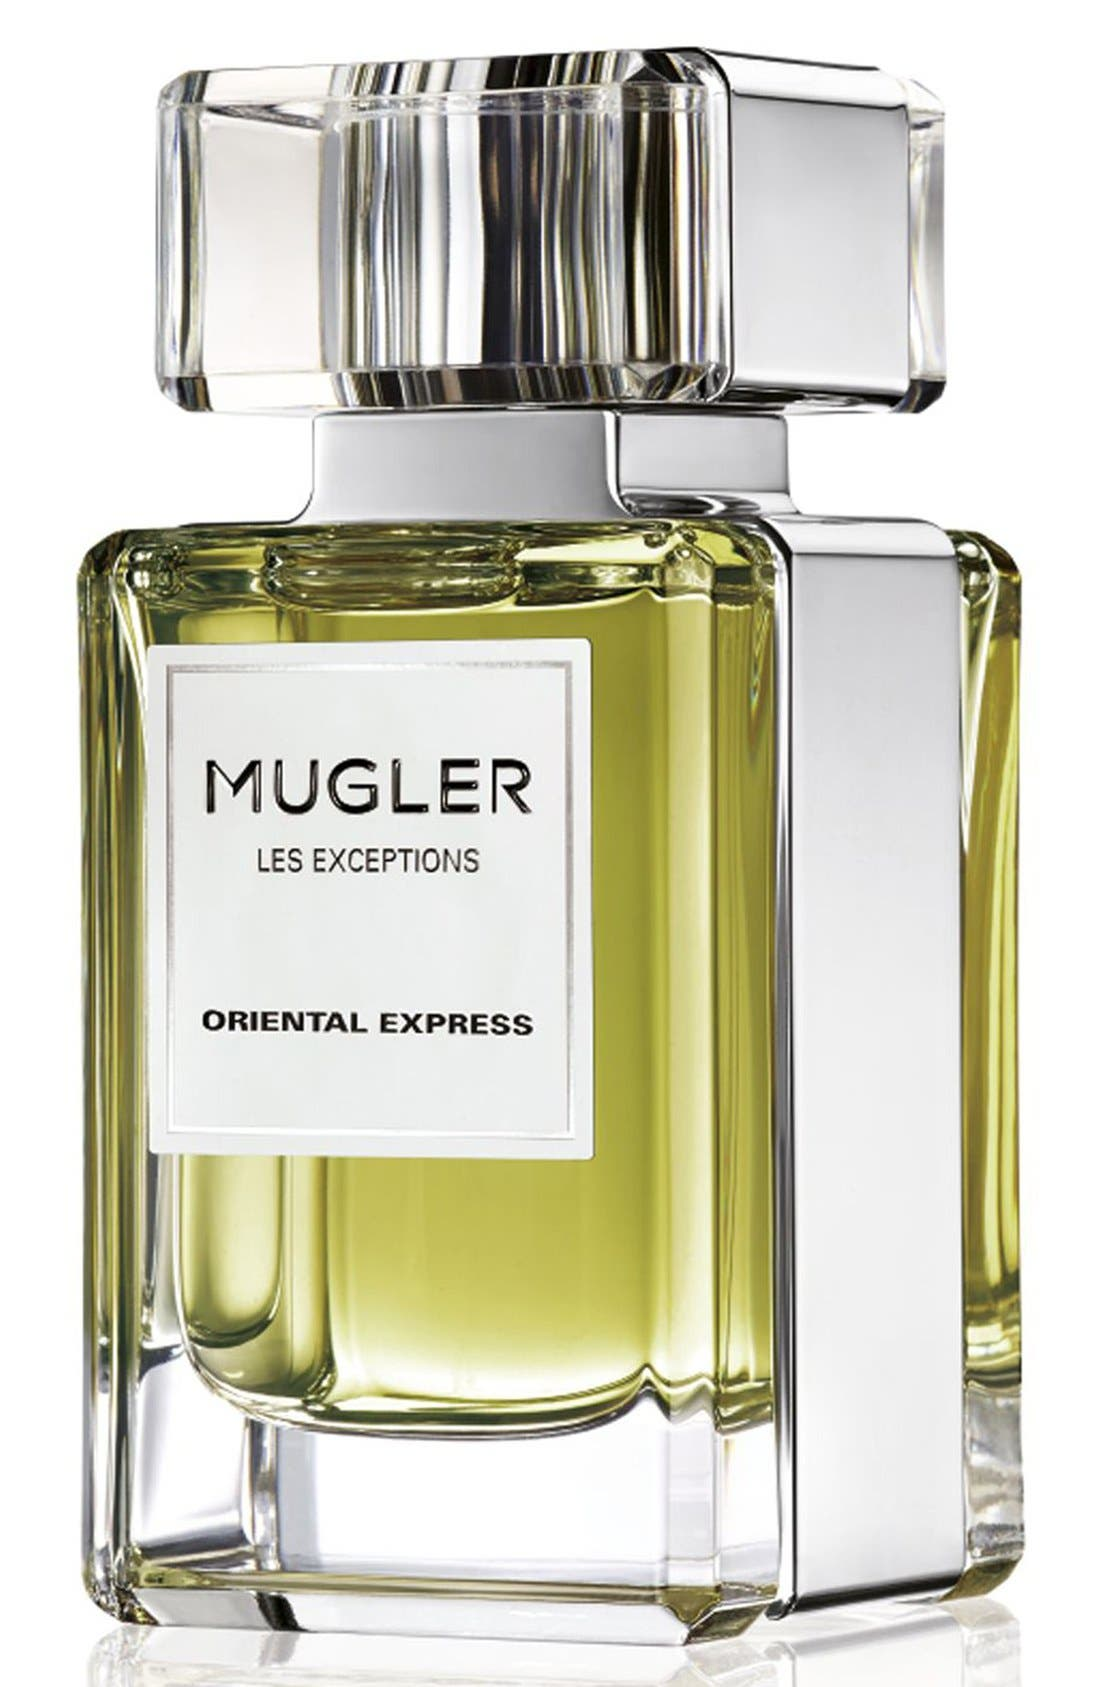 Mugler 'Les Exceptions - Oriental Express' Fragrance